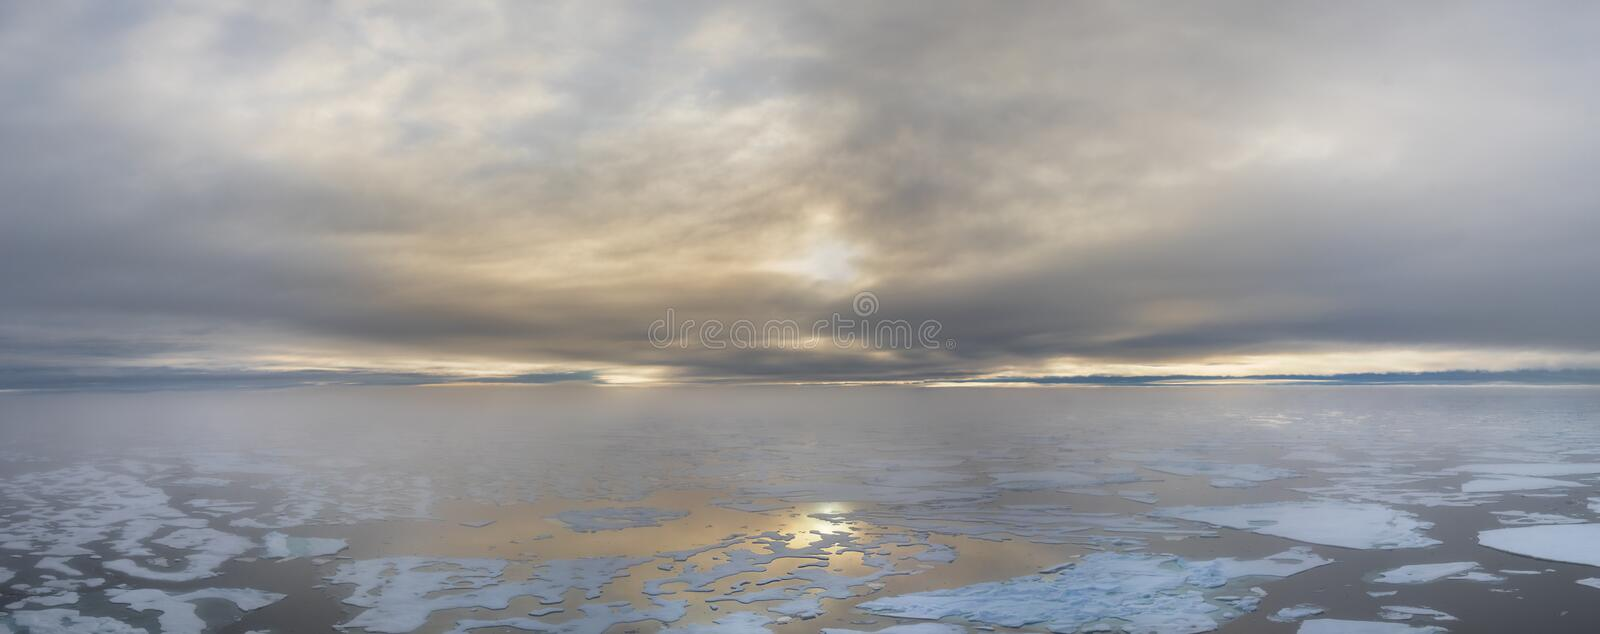 Ice edge at 82 41.01 degrees North from Svalbard at golden hr royalty free stock photography